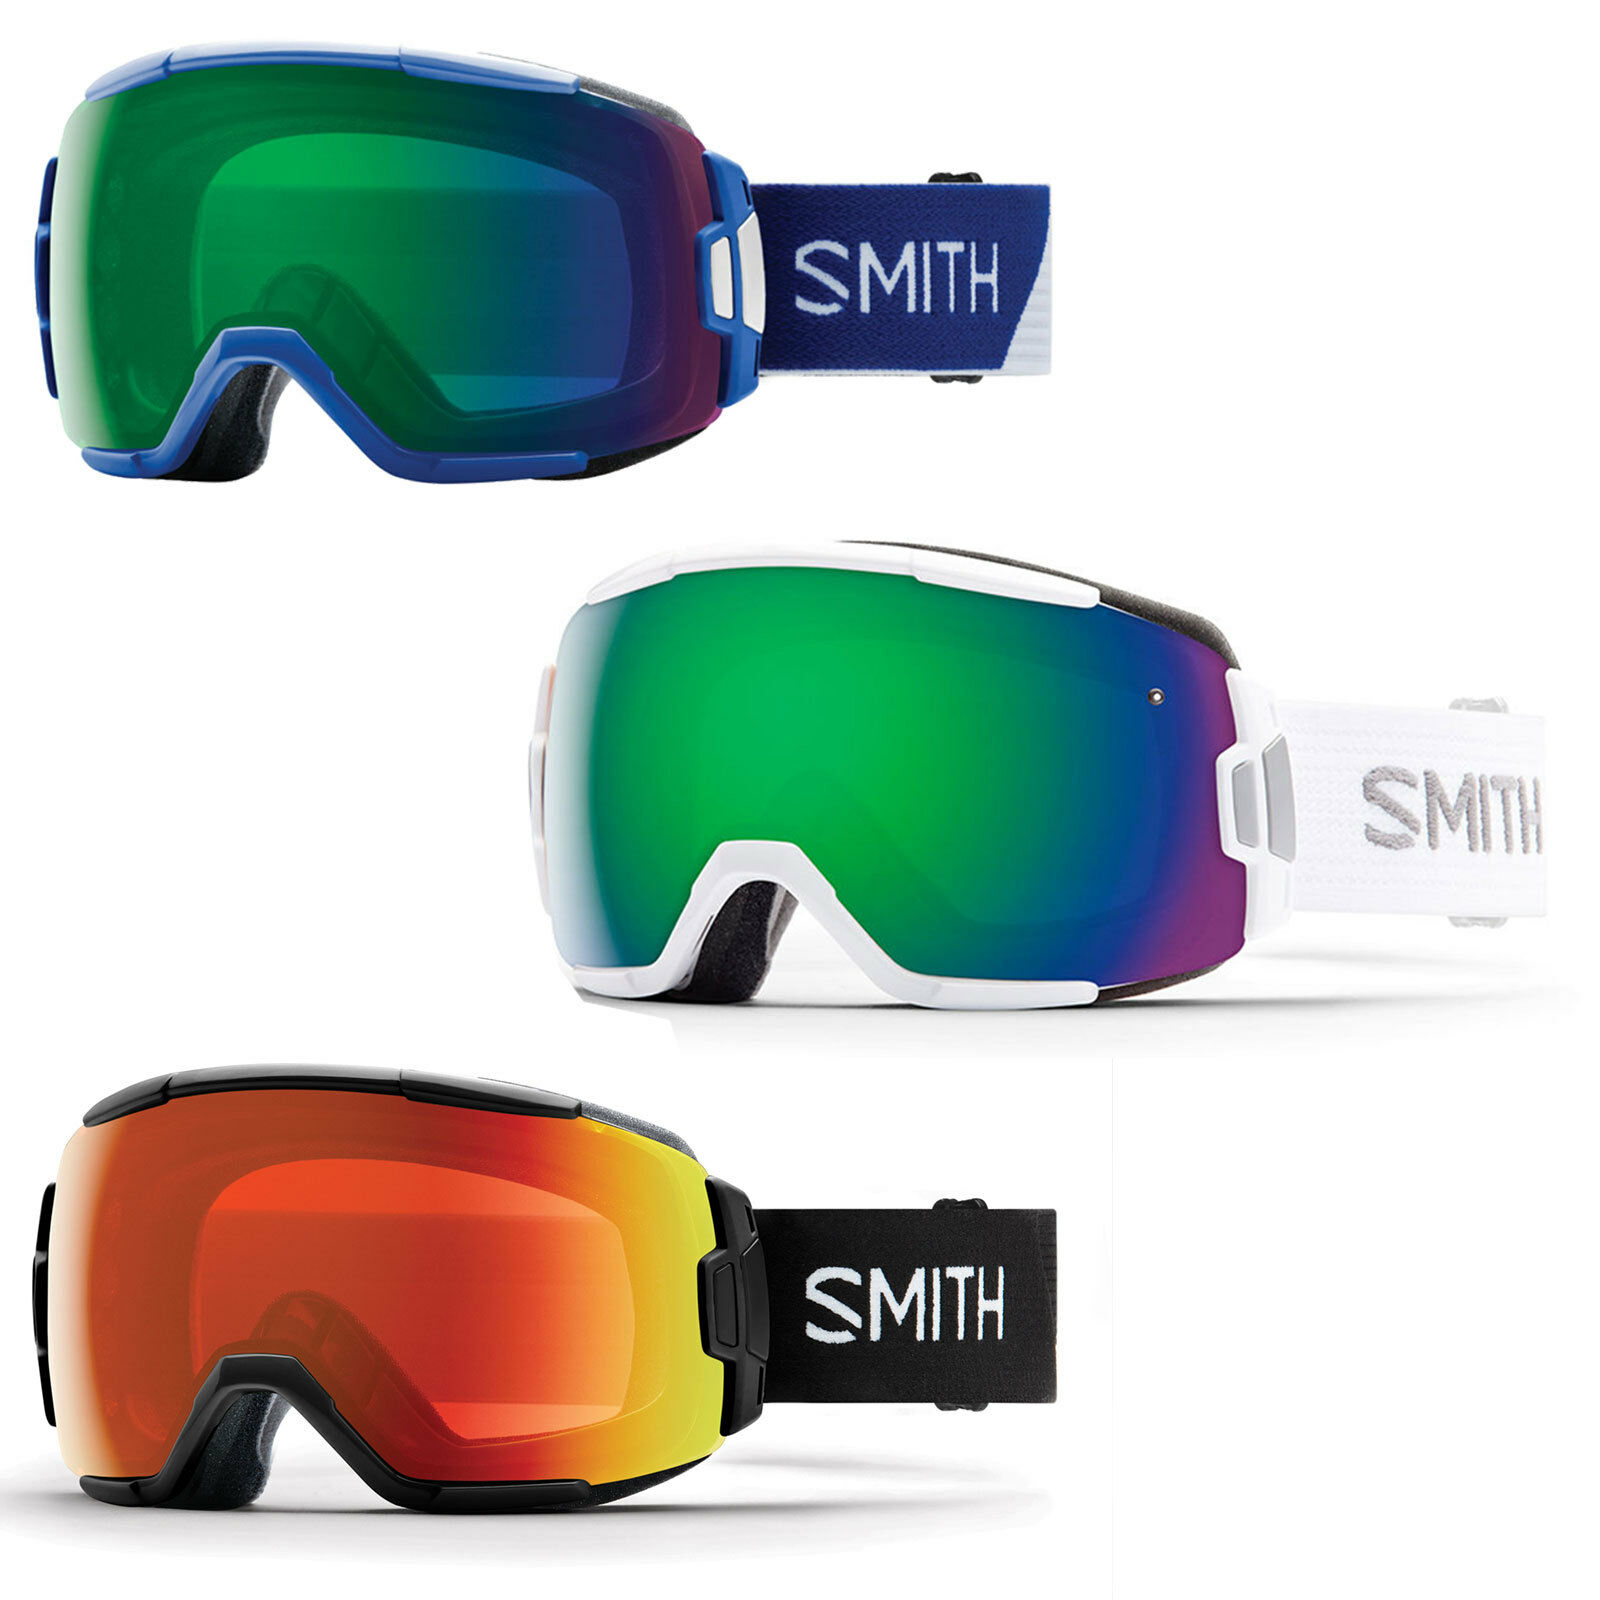 Smith vice Snowboard Goggles Ski Snow Glasses